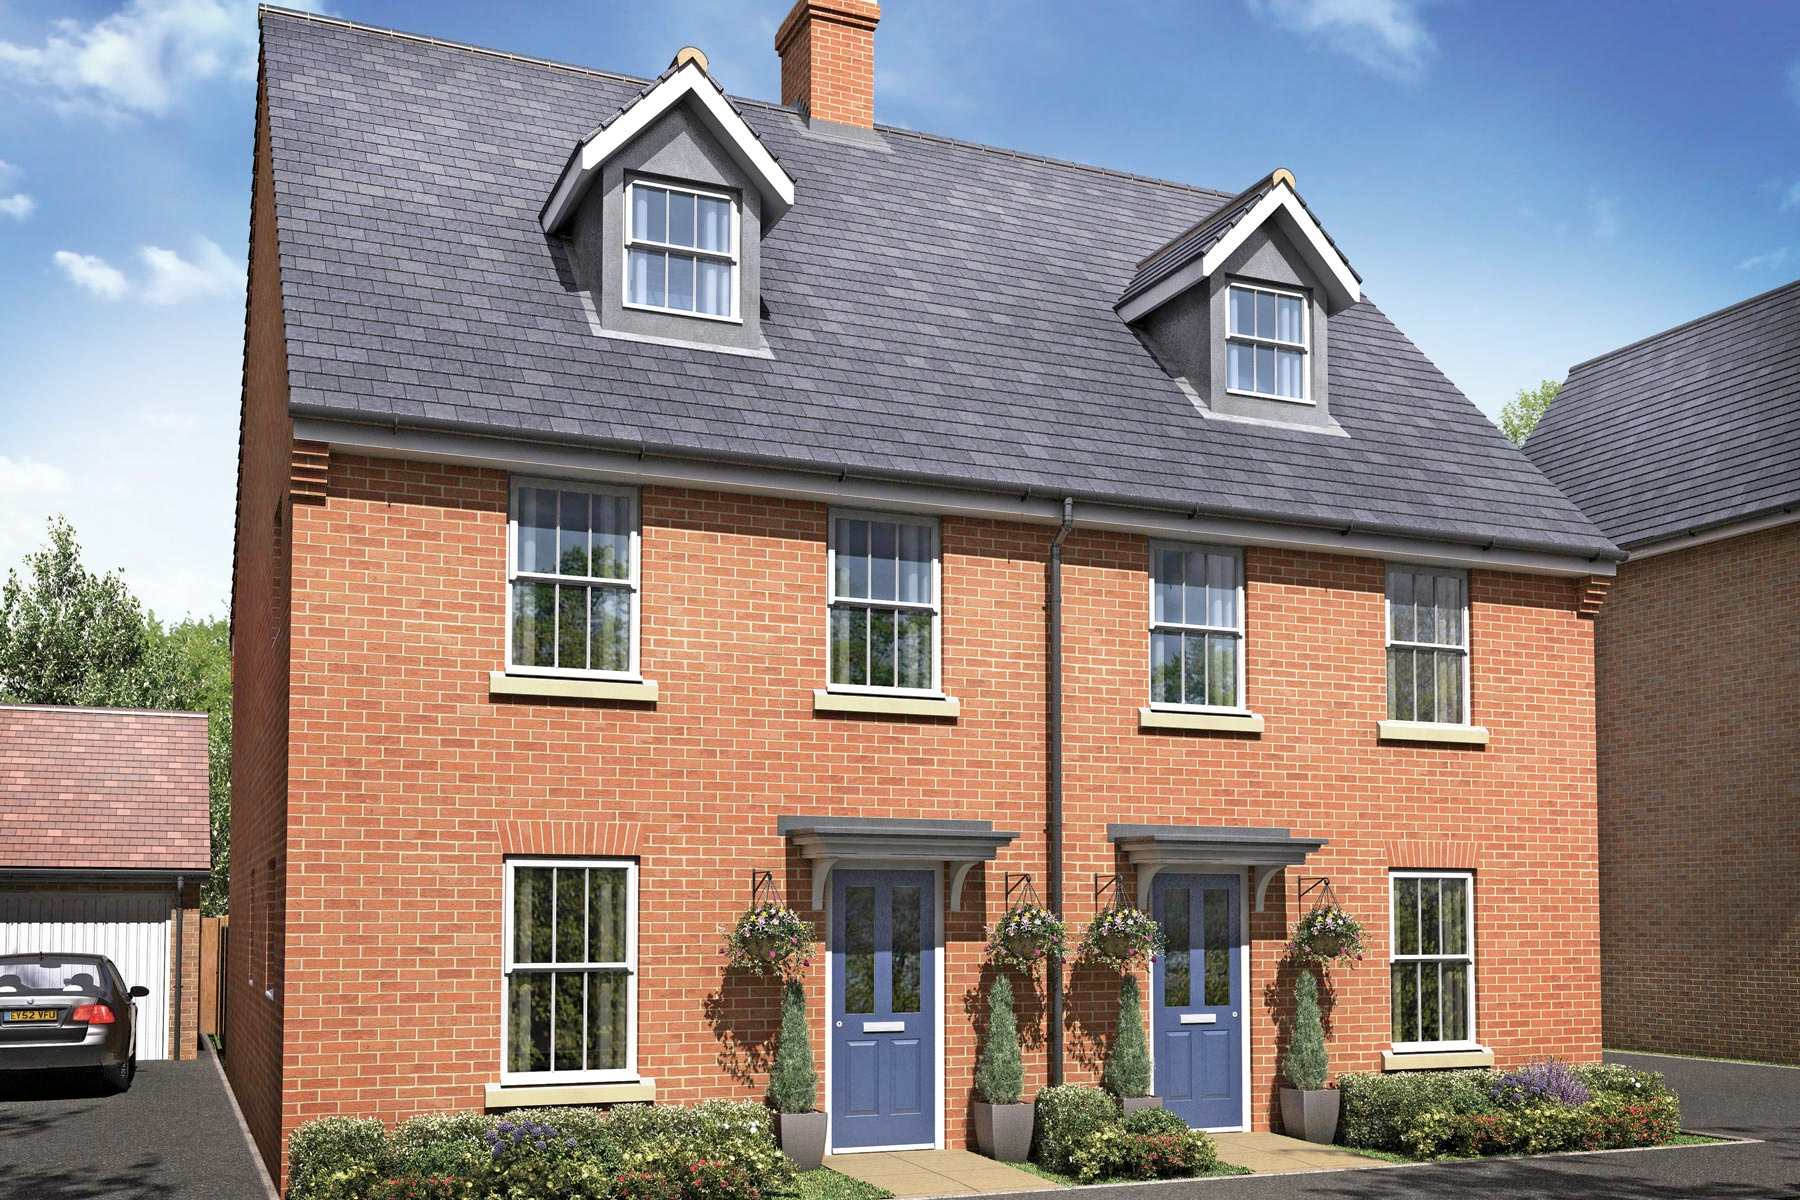 Exterior image of typical Easton homes at Bramble Walk